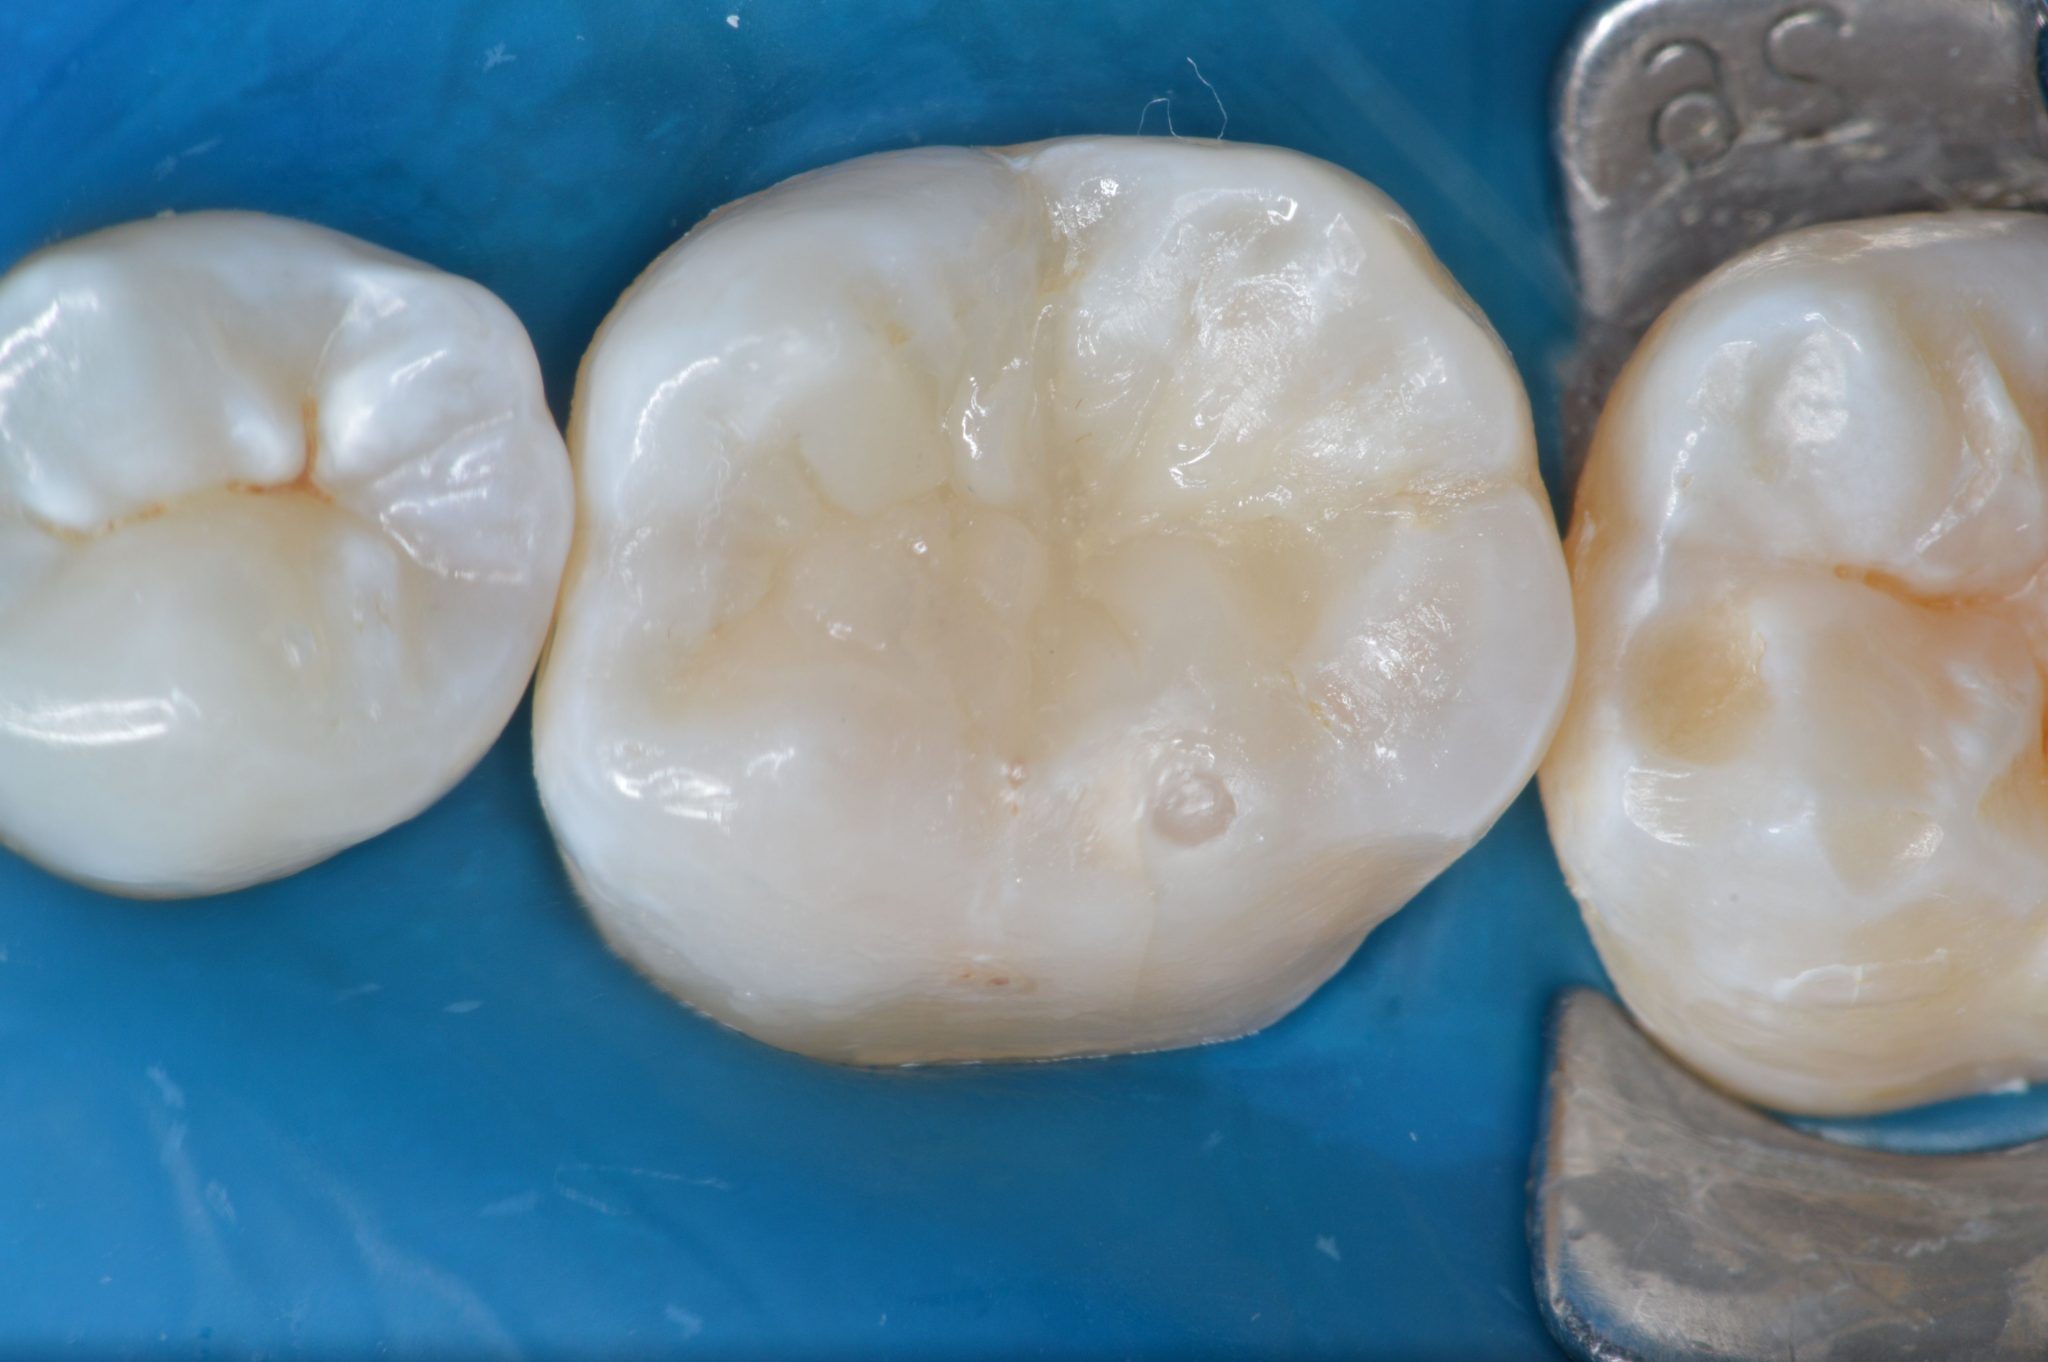 To Fill Or Restore Dr Italo Moraes And Dr Bruno Carlini